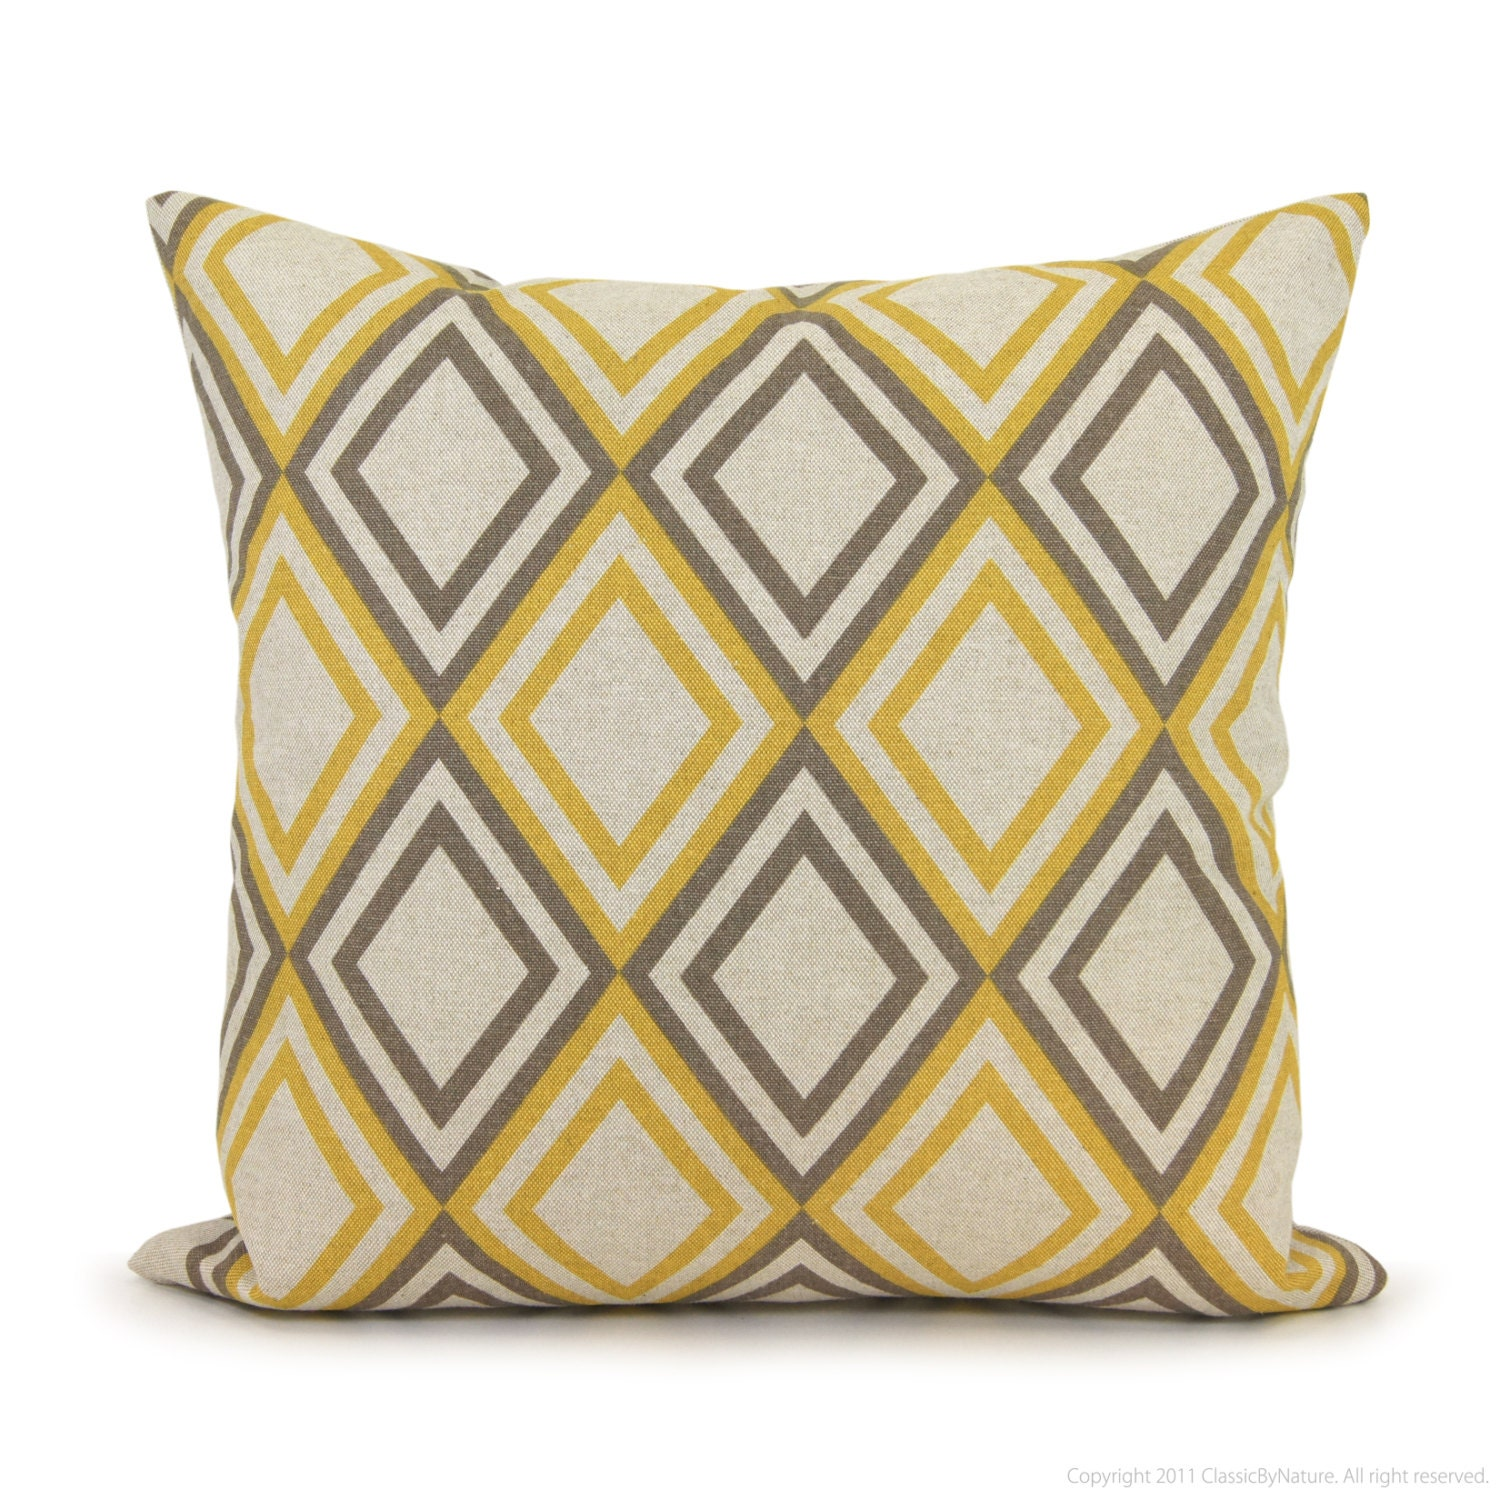 Yellow And Grey Throw Pillow Covers : Geometric pillow cover ? 18?18 pillow cover ? Gray and yellow decorative pillow cover ? Modern ...